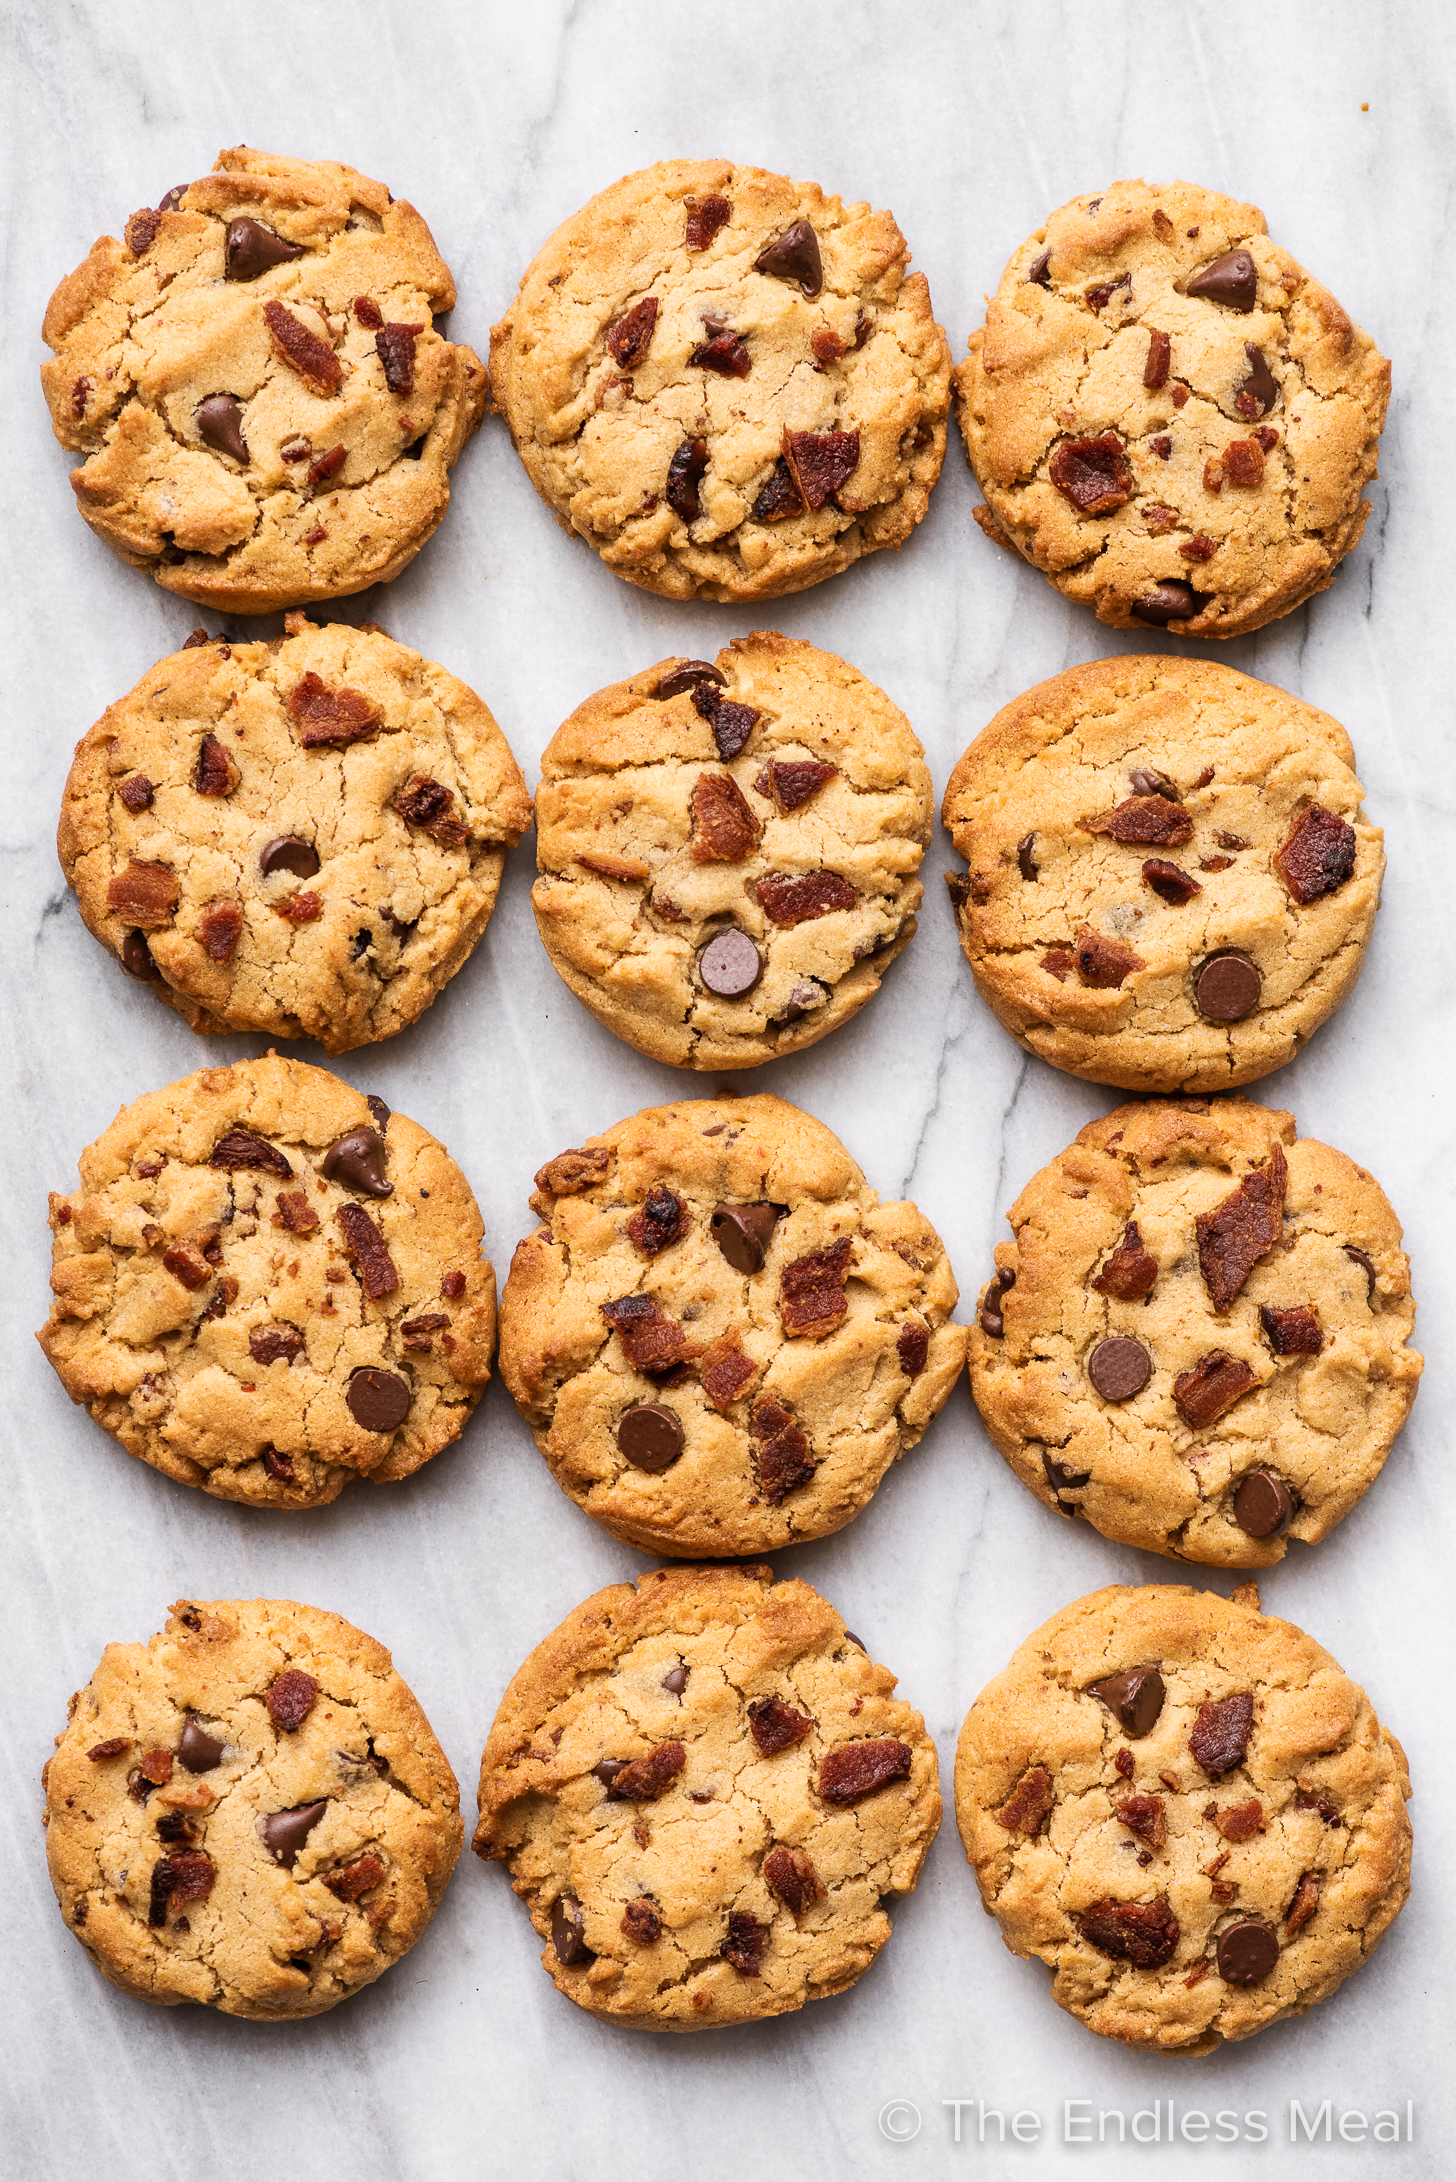 Bourbon Bacon Peanut Butter Cookies lined up on a marble counter.